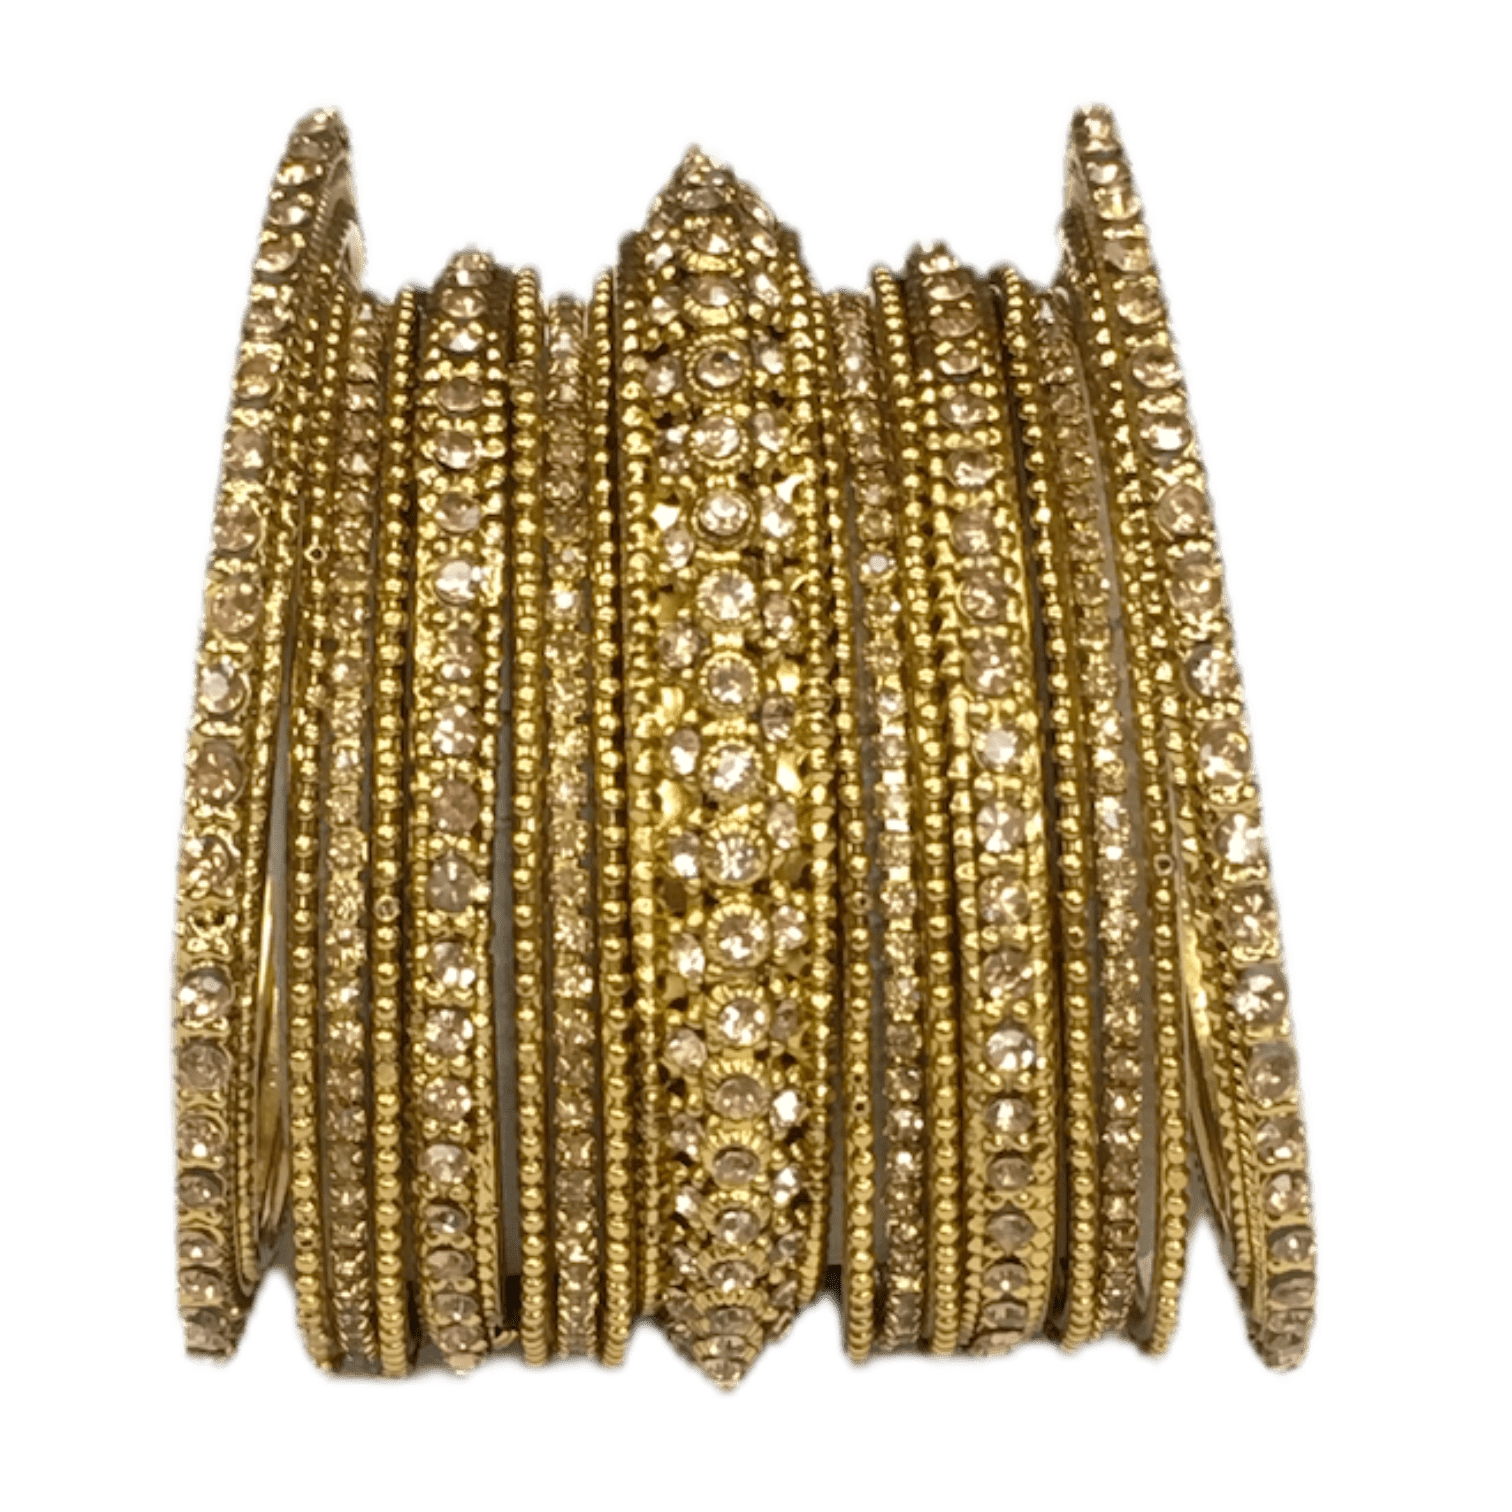 A set of 17 Antique / LCT Gold stone Bangles - Bollywood, Weddings, Fancy Dress JAN6641 T0519 - Prachy Creations